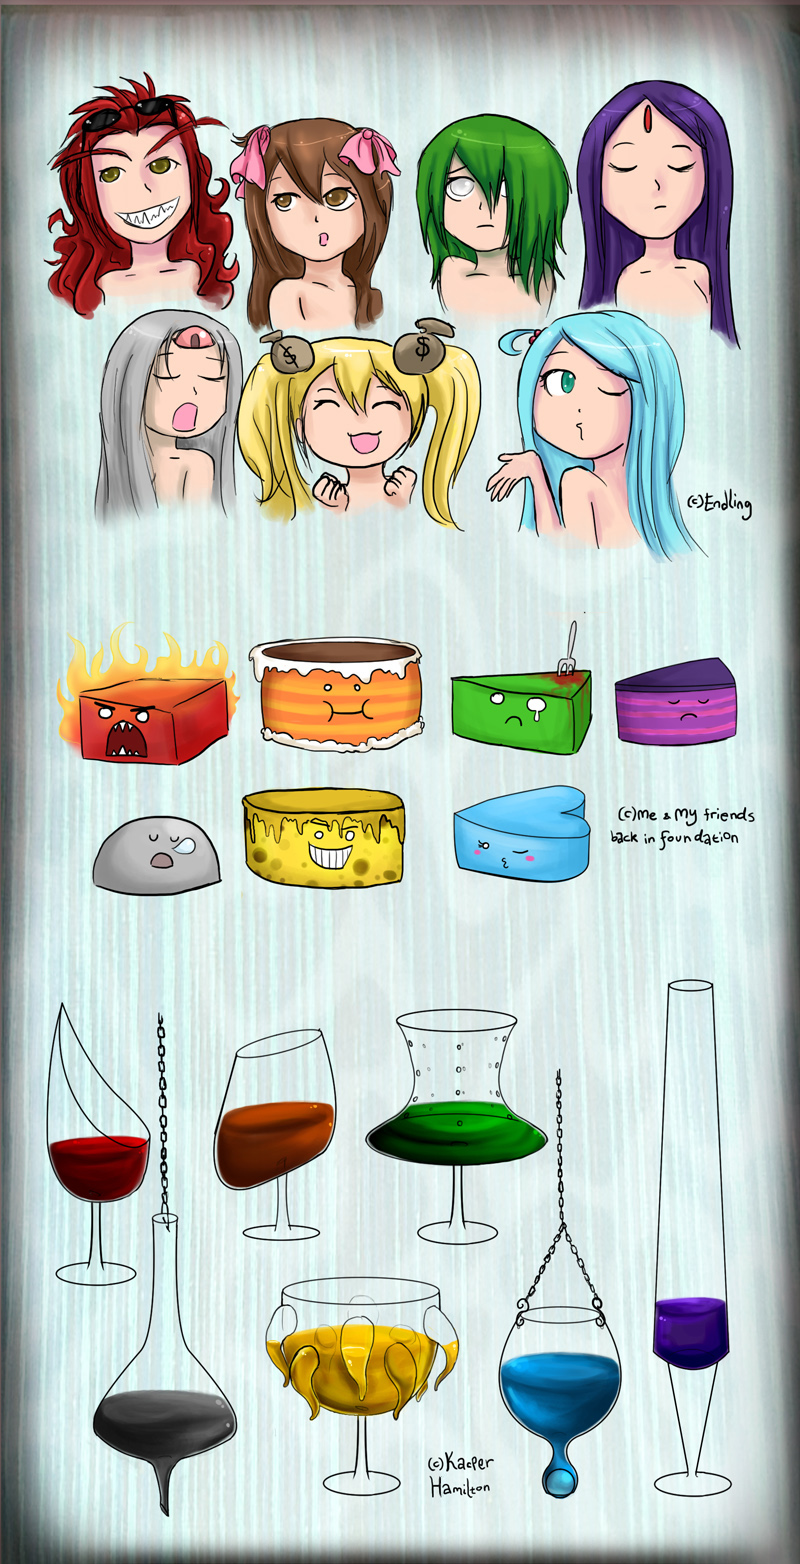 7 Deadly Sins Wine Glasses 7sins Girls Cakes Wineglasses By Chocoreaper On Deviantart